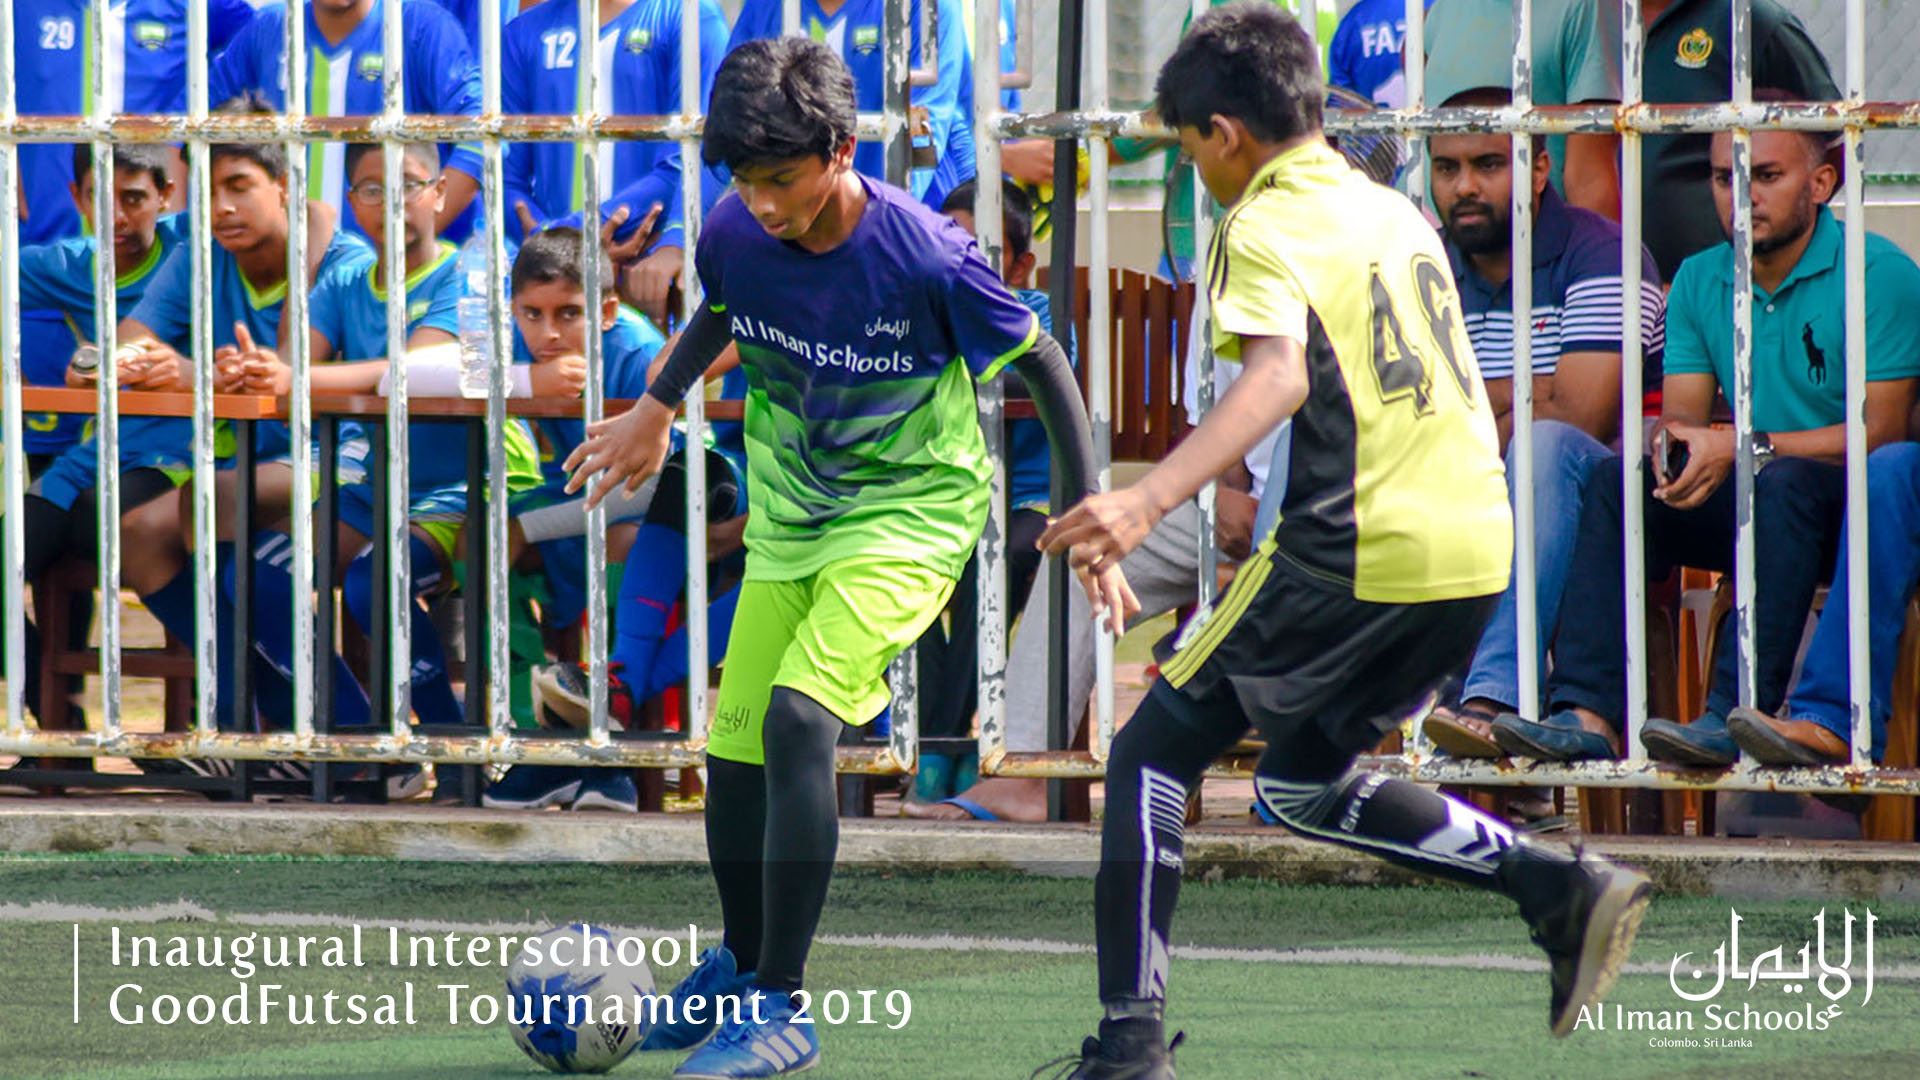 Images from the Inaugural Interschool Futsal Tournament 2019